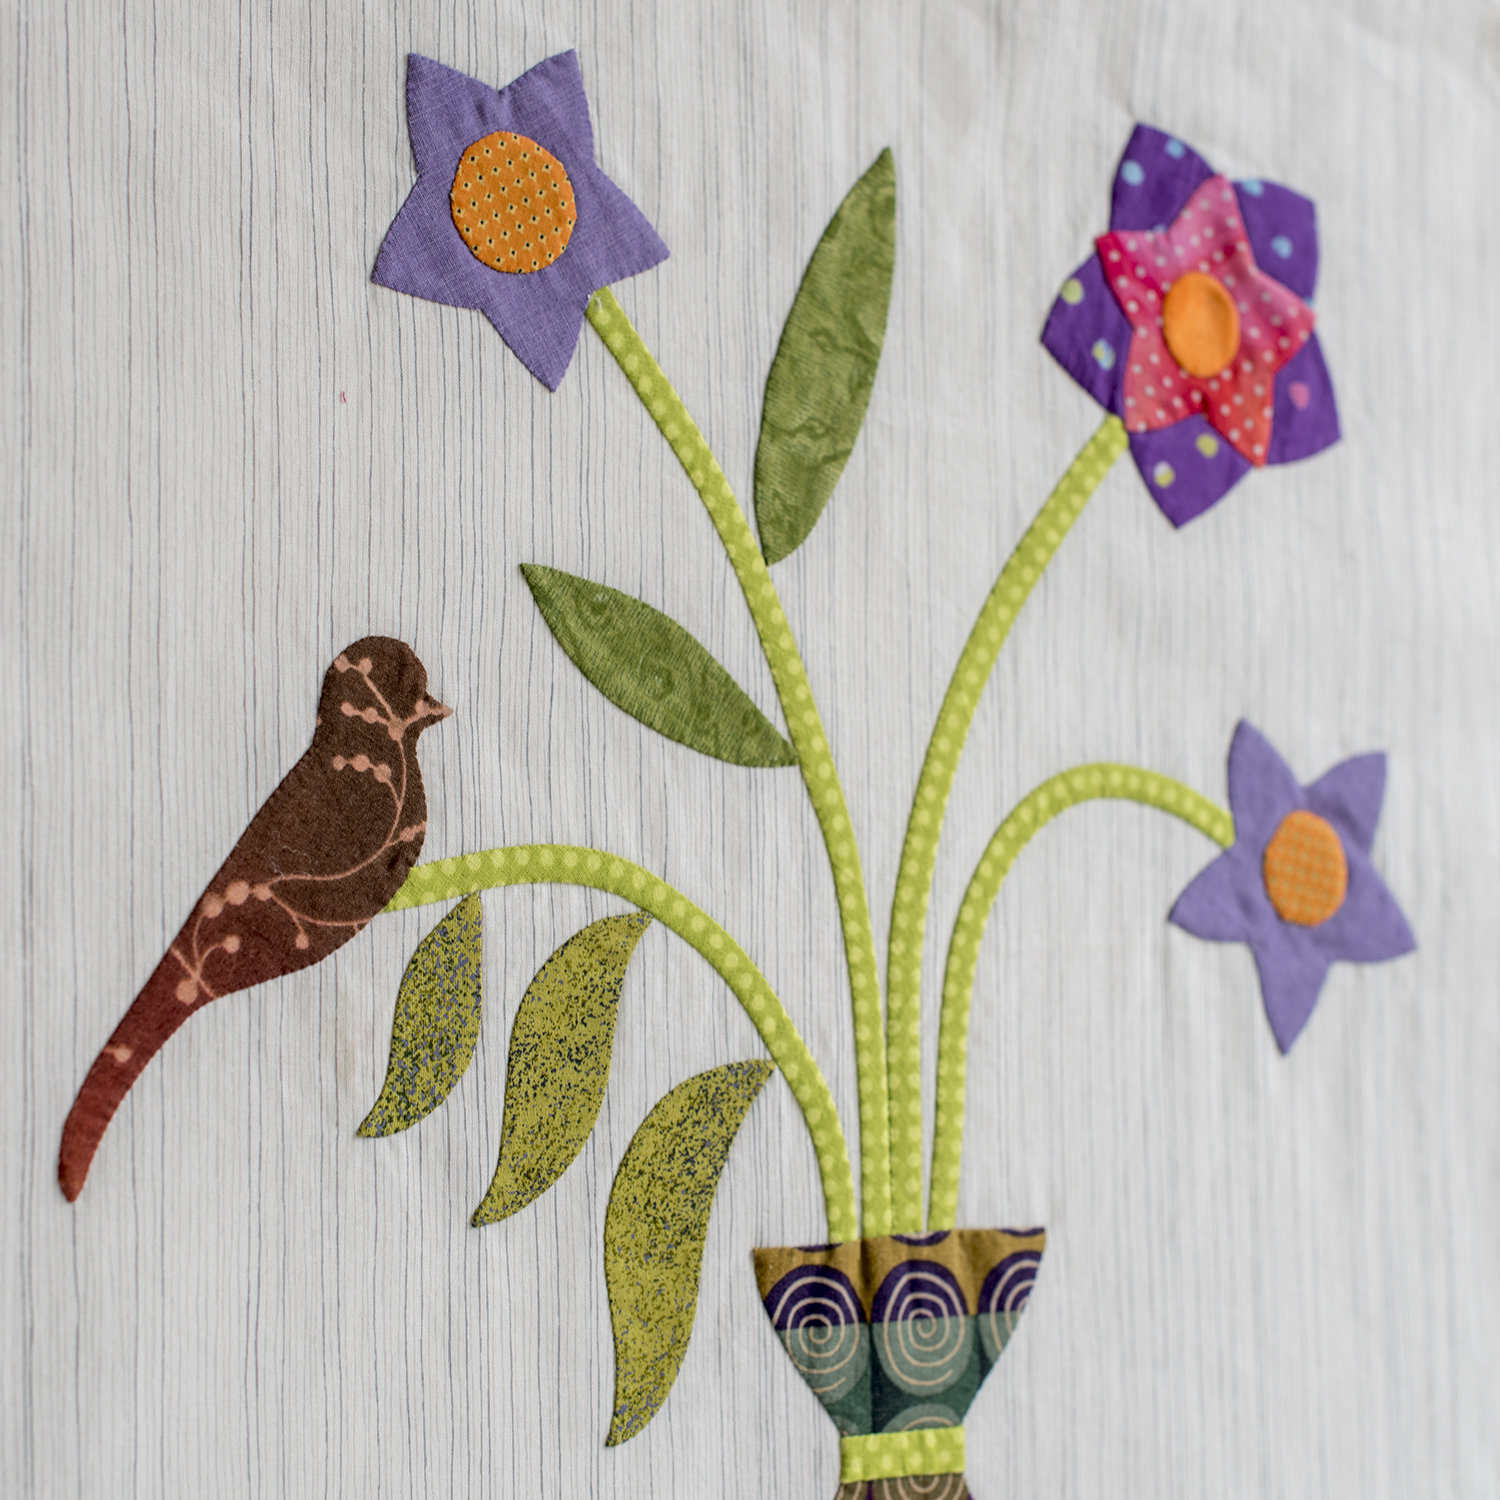 applique flowers.jpg